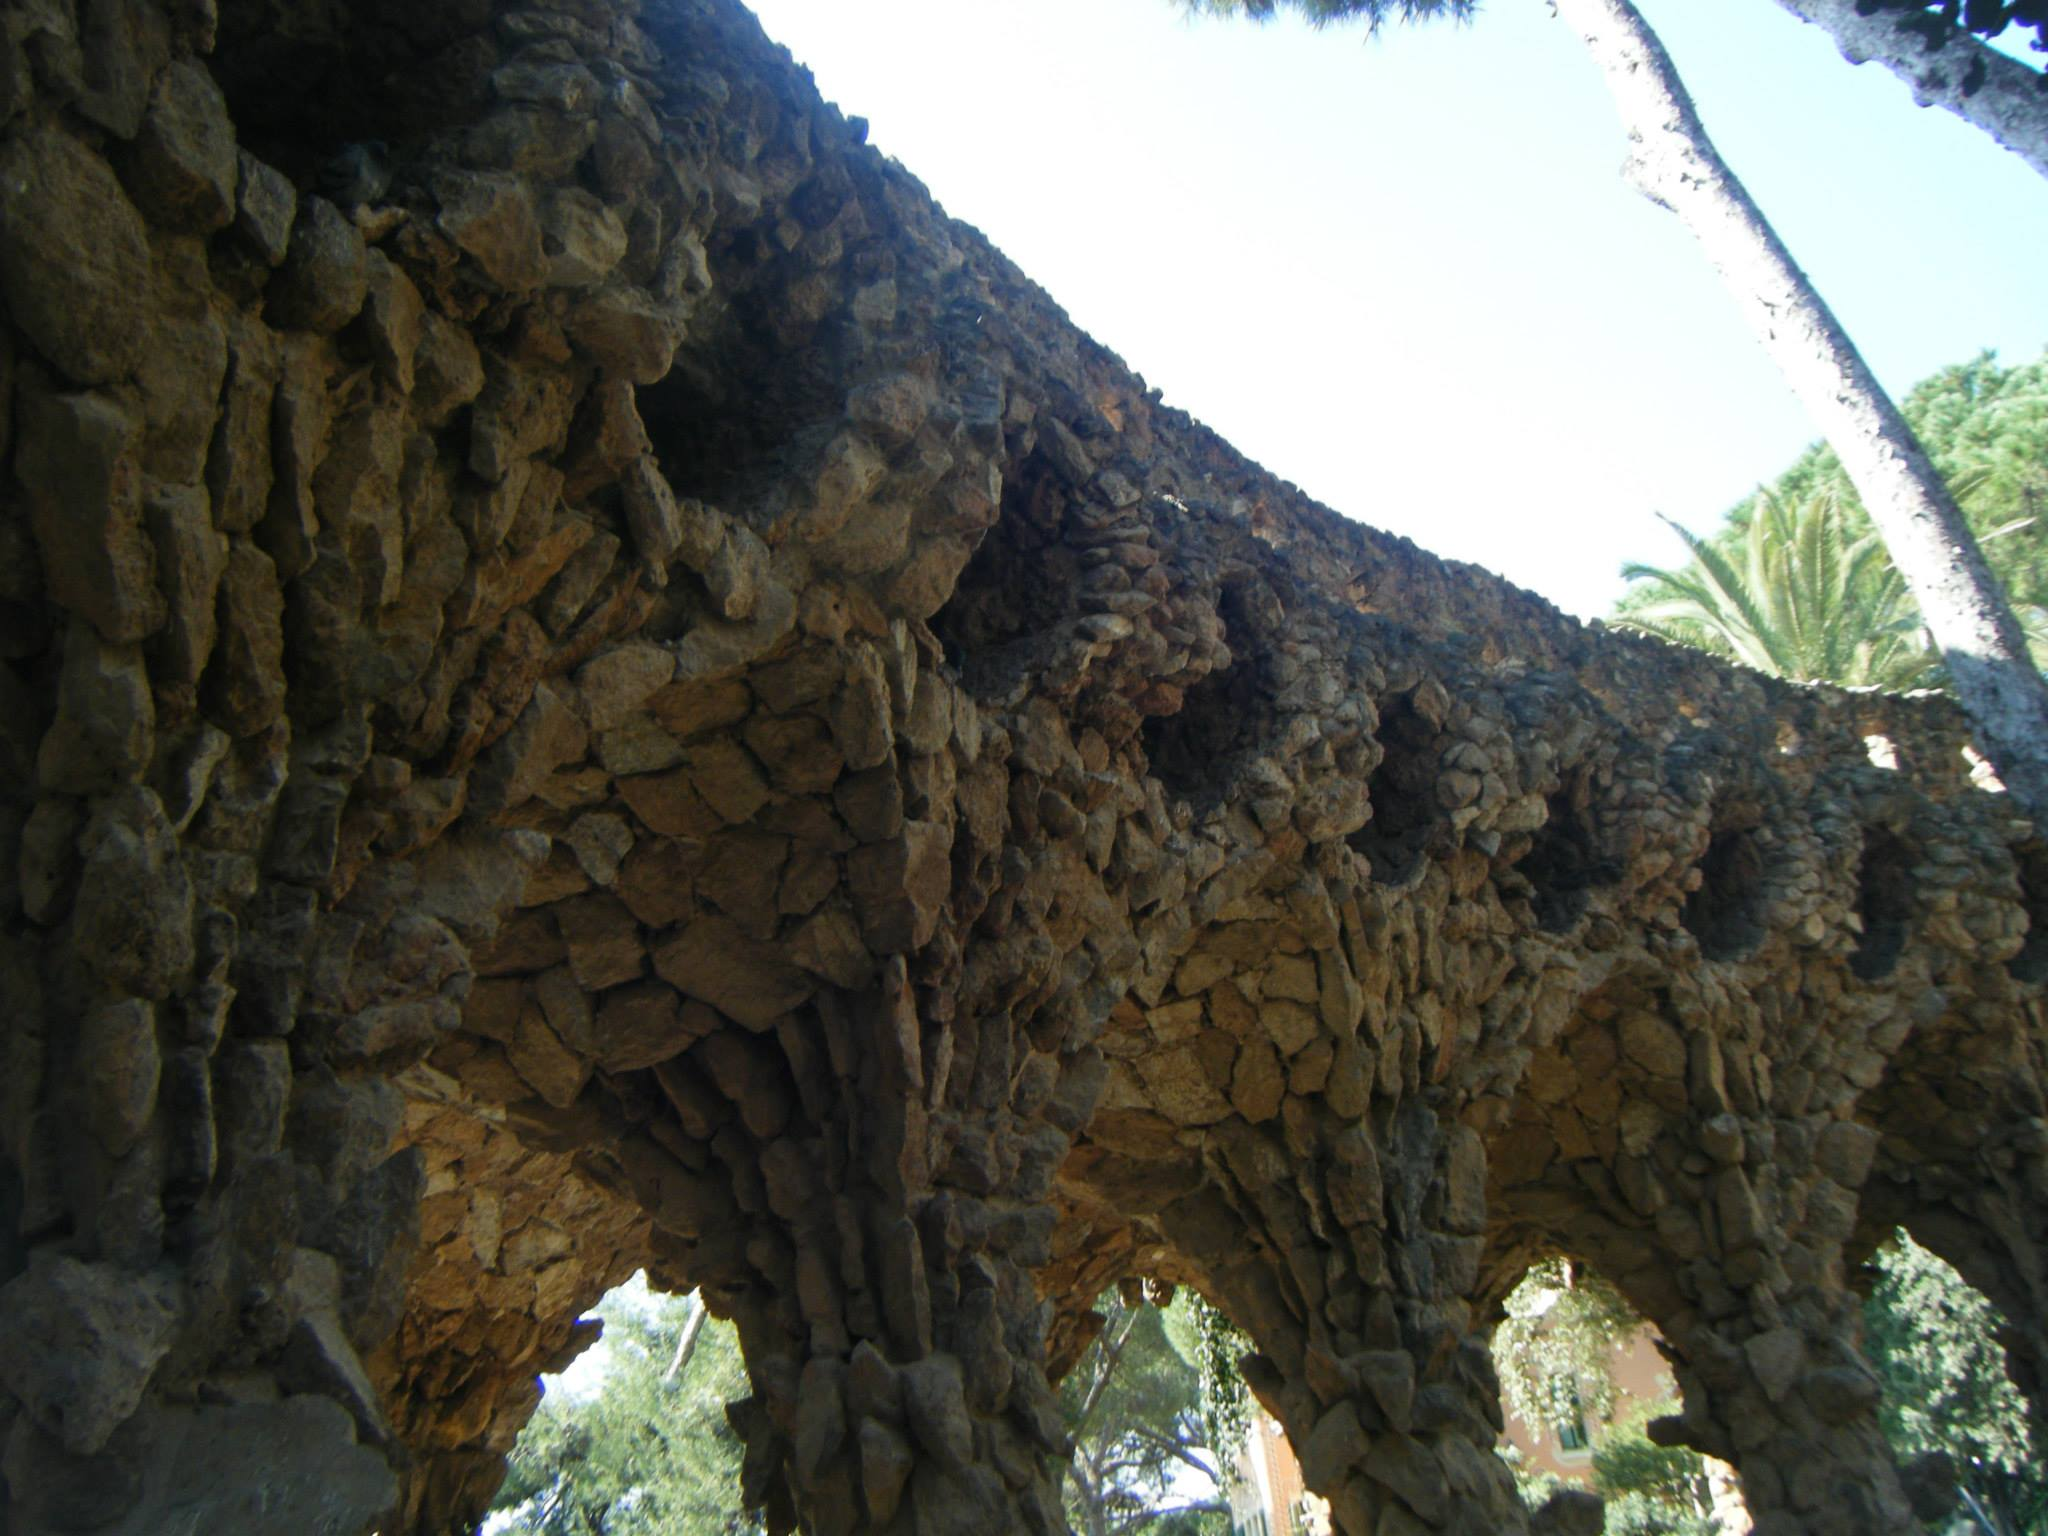 Outdoor & Cultural Activities to Do While Traveling in Barcelona